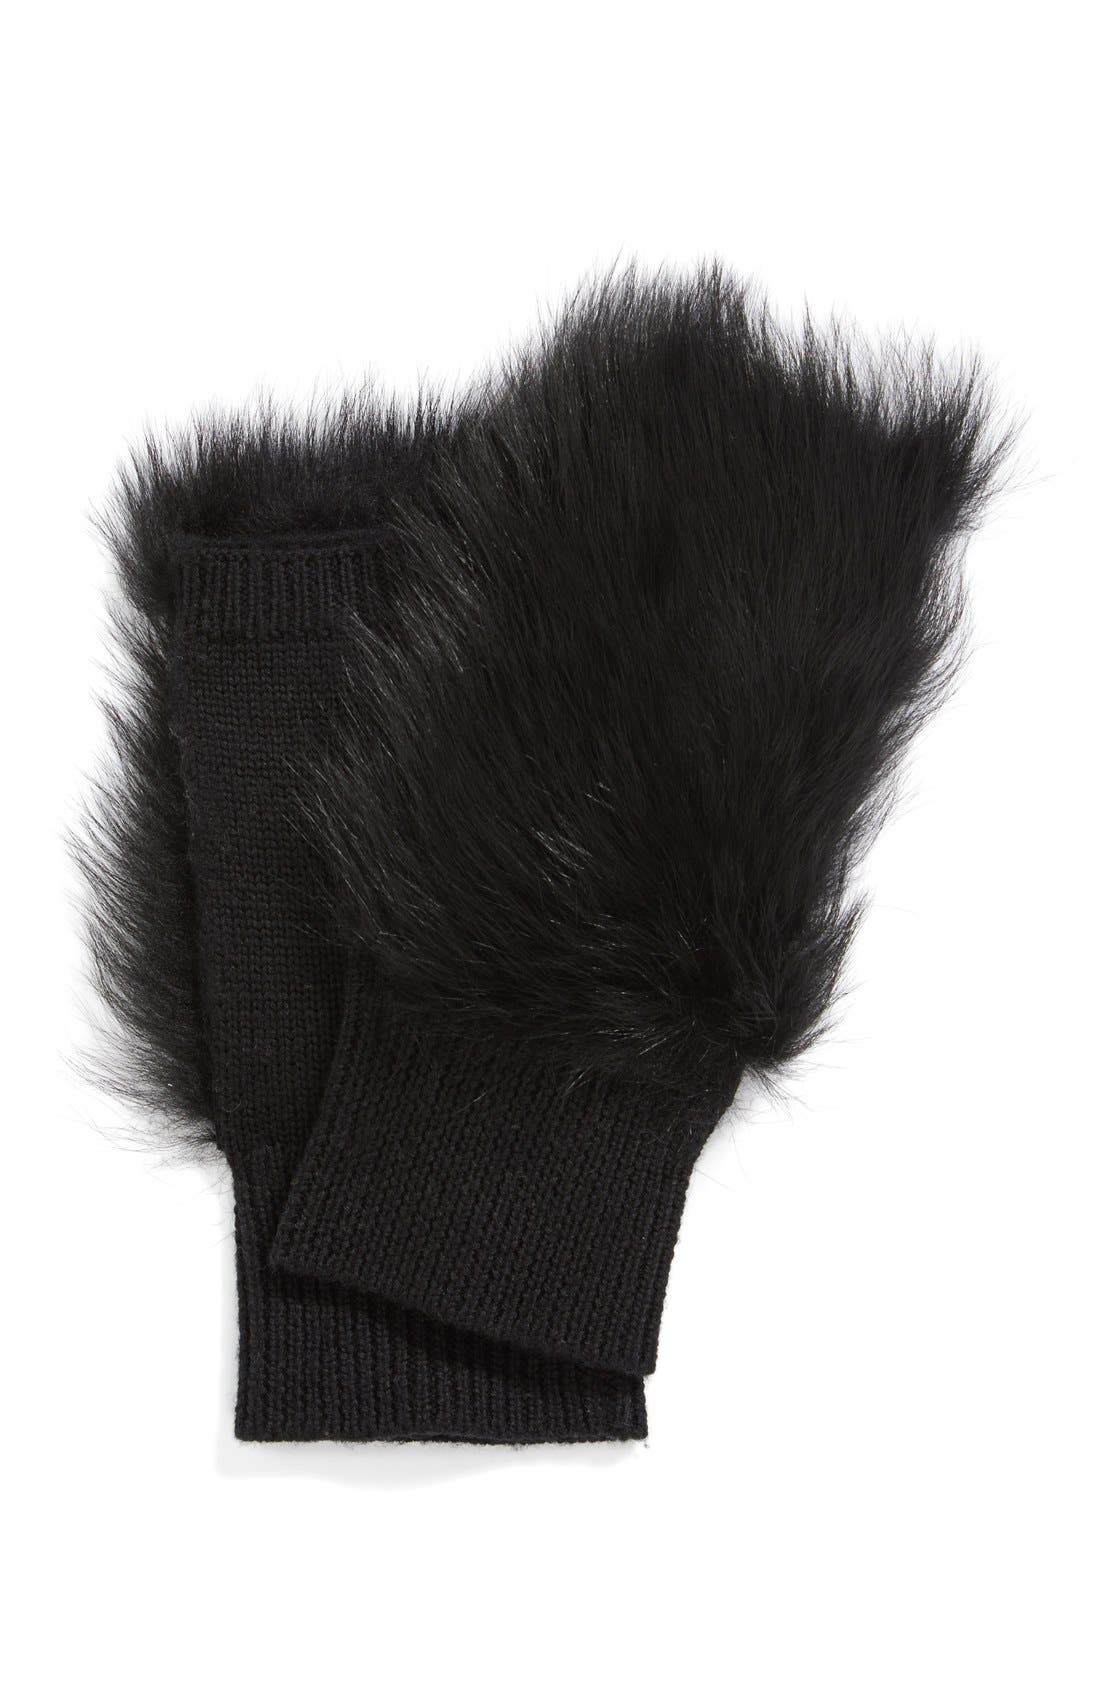 'Mindy' Merino Wool & Genuine Shearling Fingerless Mittens,                             Alternate thumbnail 3, color,                             001